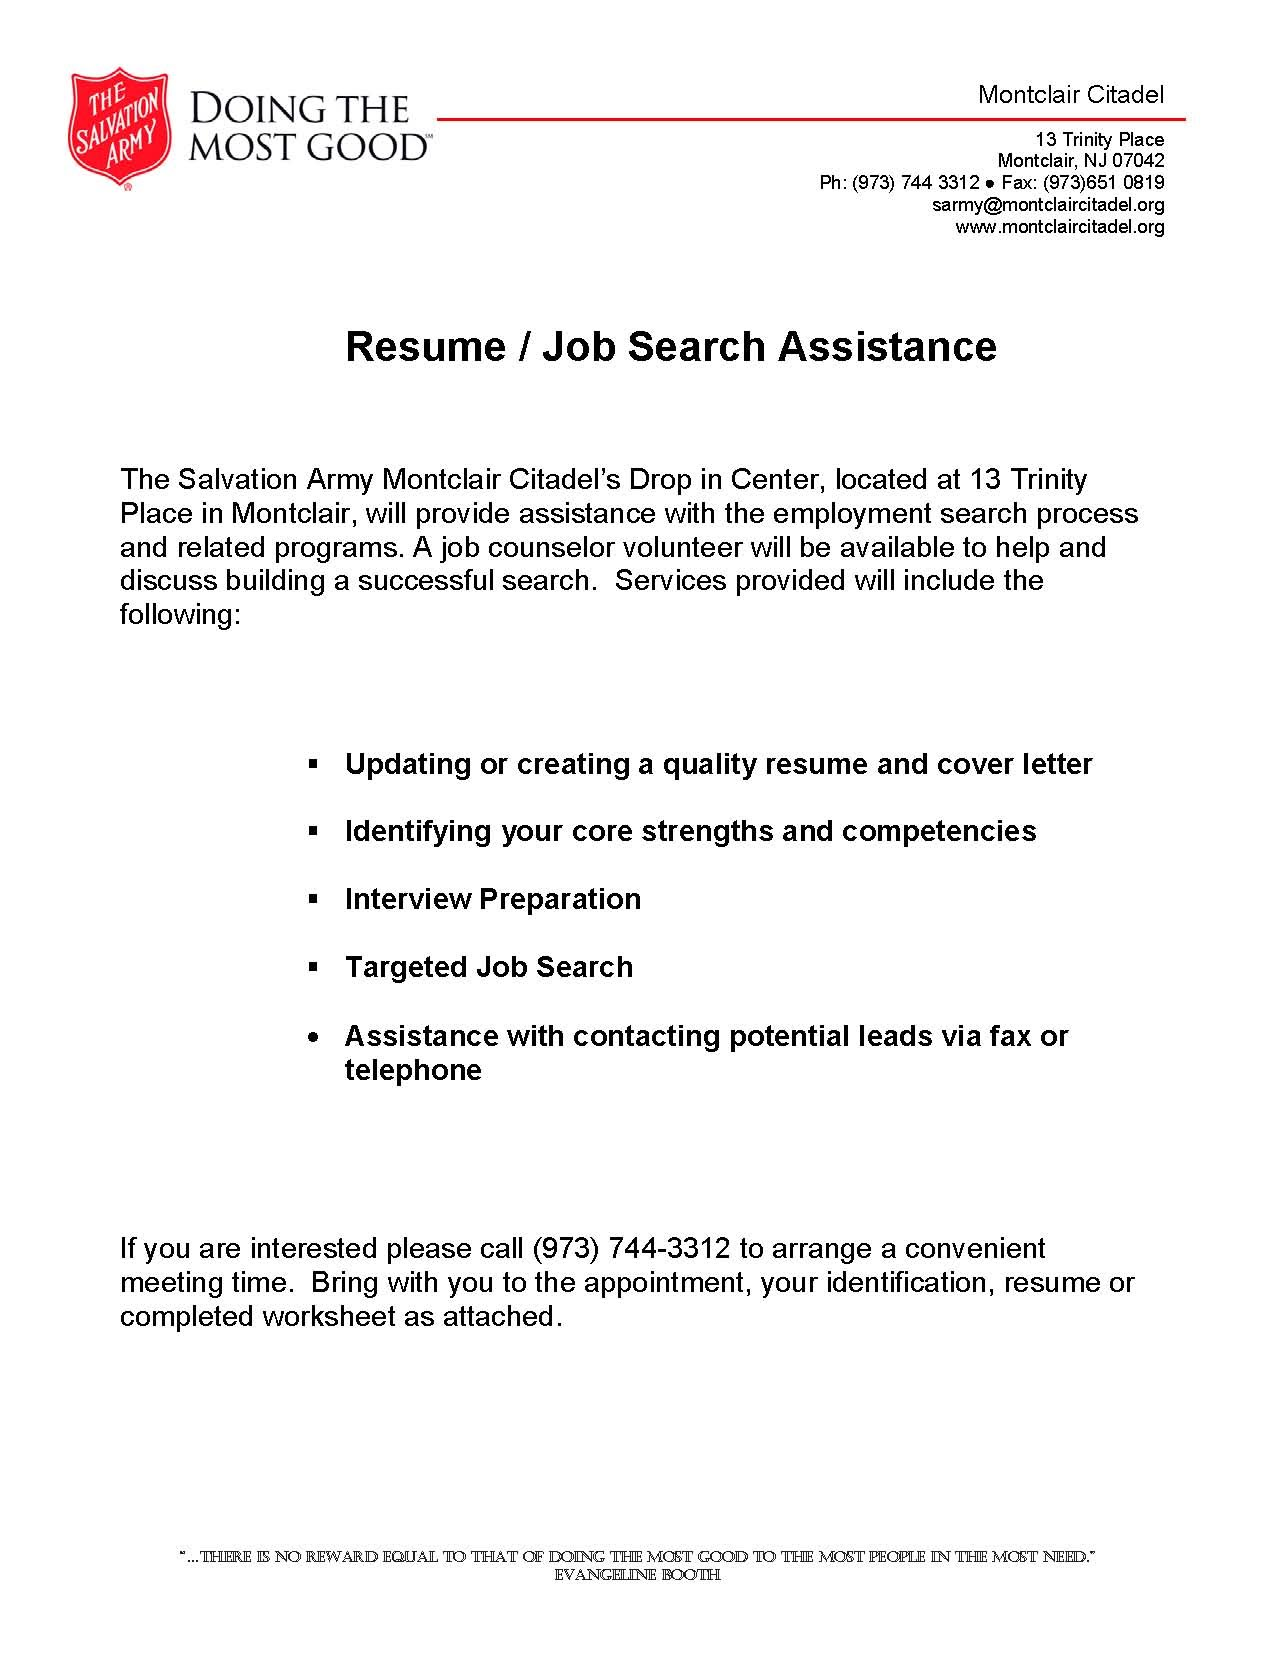 Marvelous Free Resume Writing Help Available Ideas About Resume Writing Order Resume  Online Zara Resume Writing Online